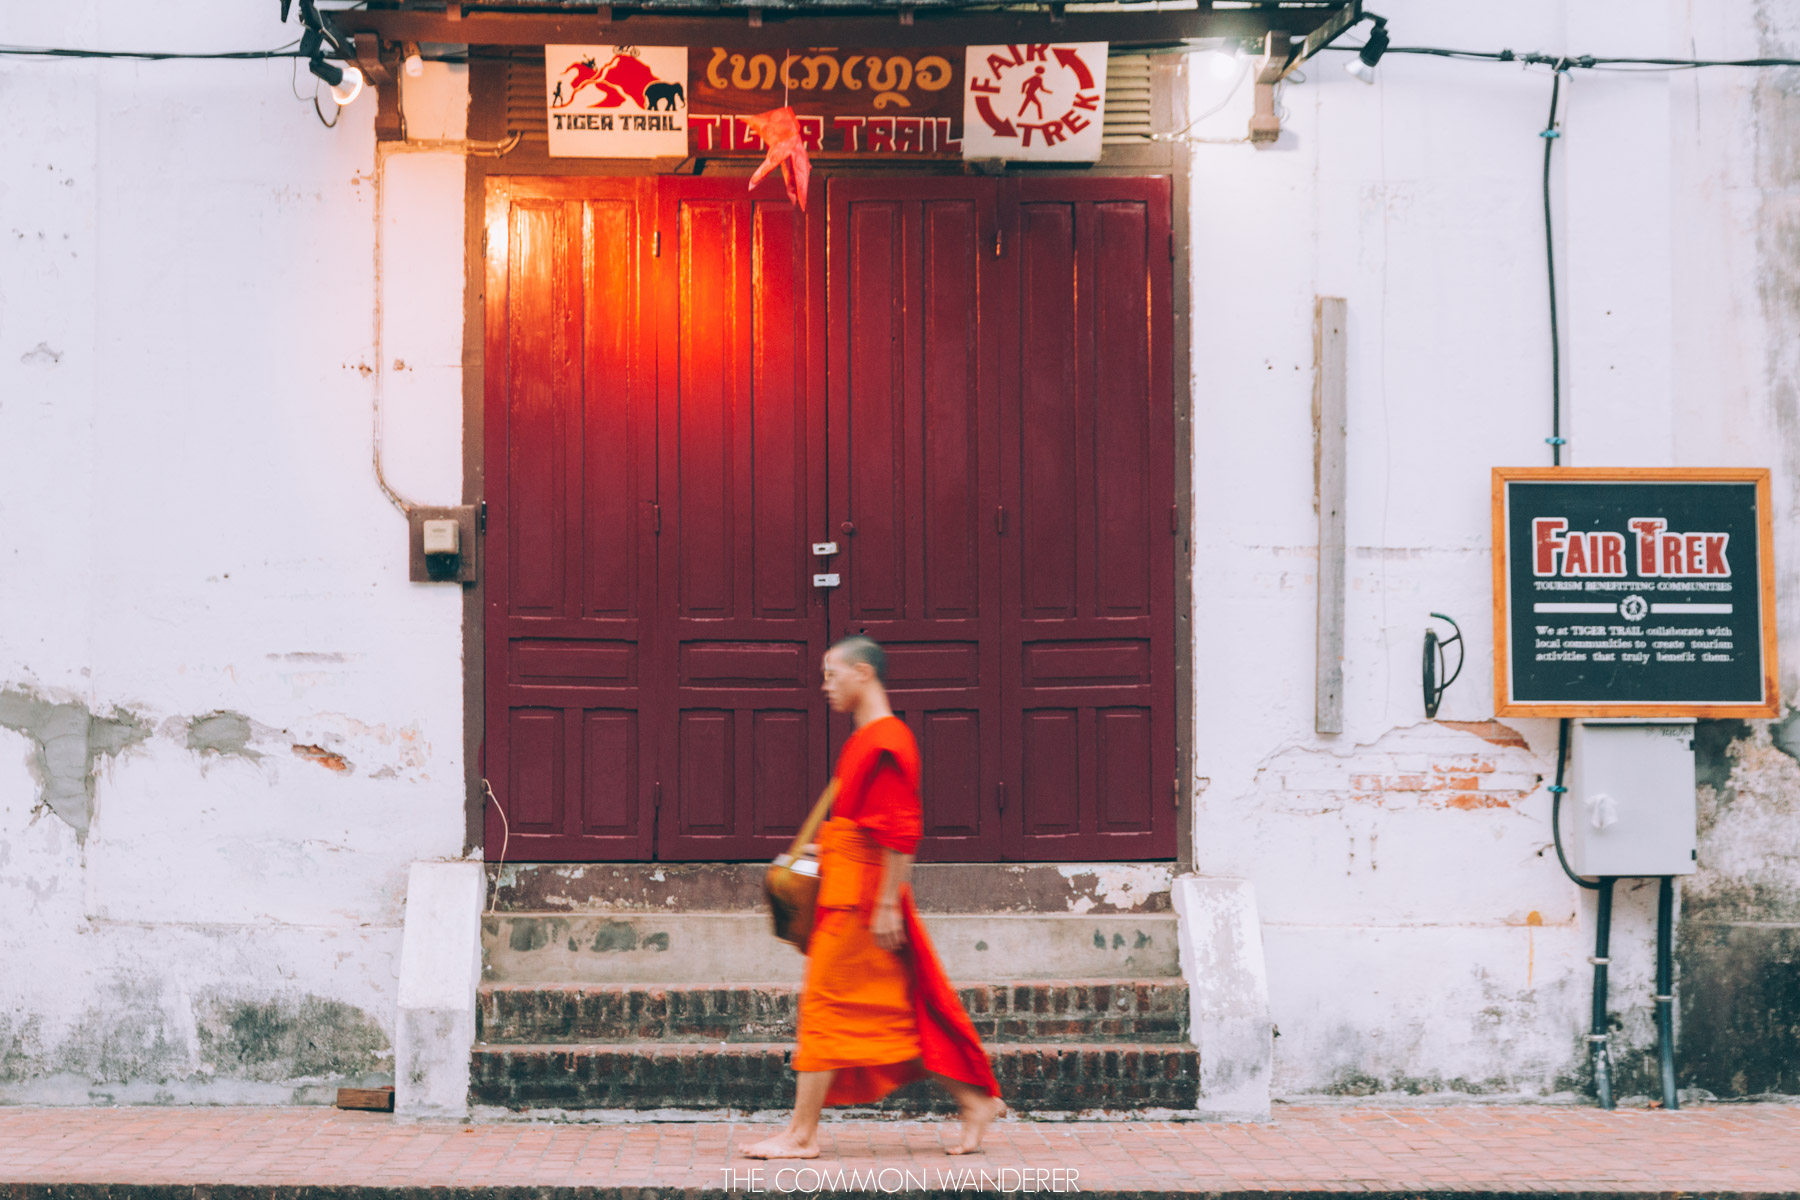 a young monk walks past a door on the way to morning alms, Luang Prabang